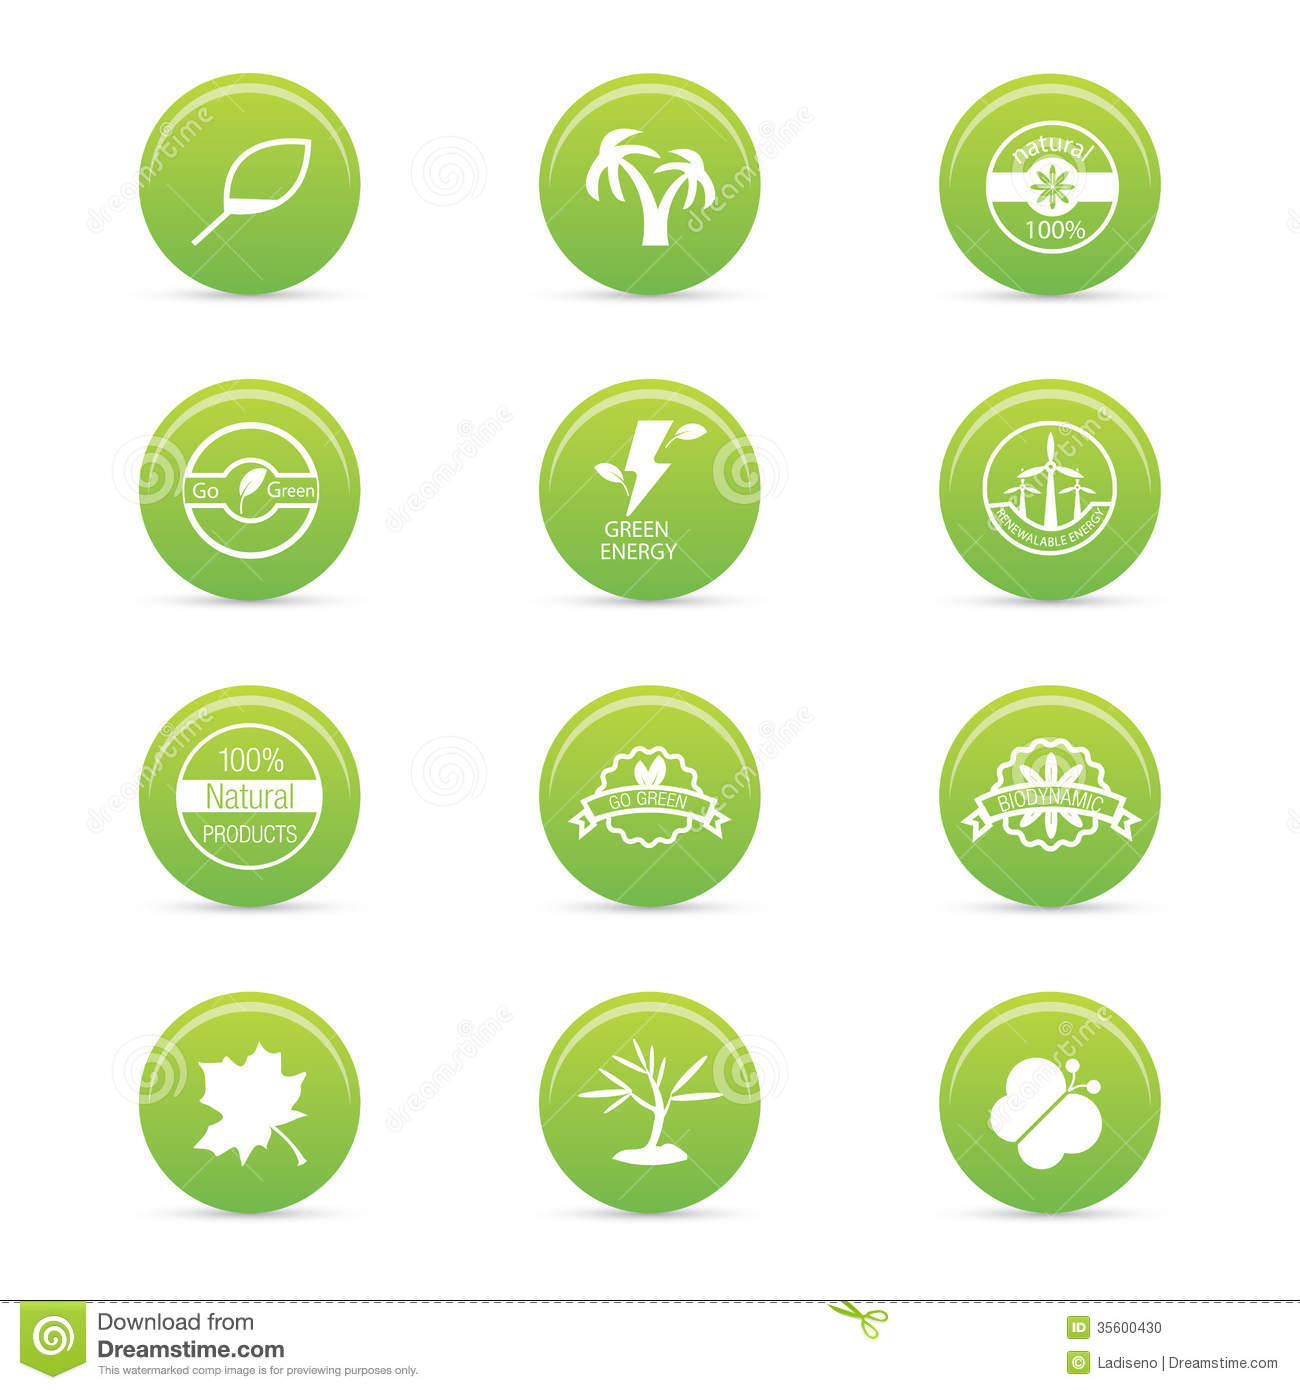 Abstract sustainability icons on a white background.